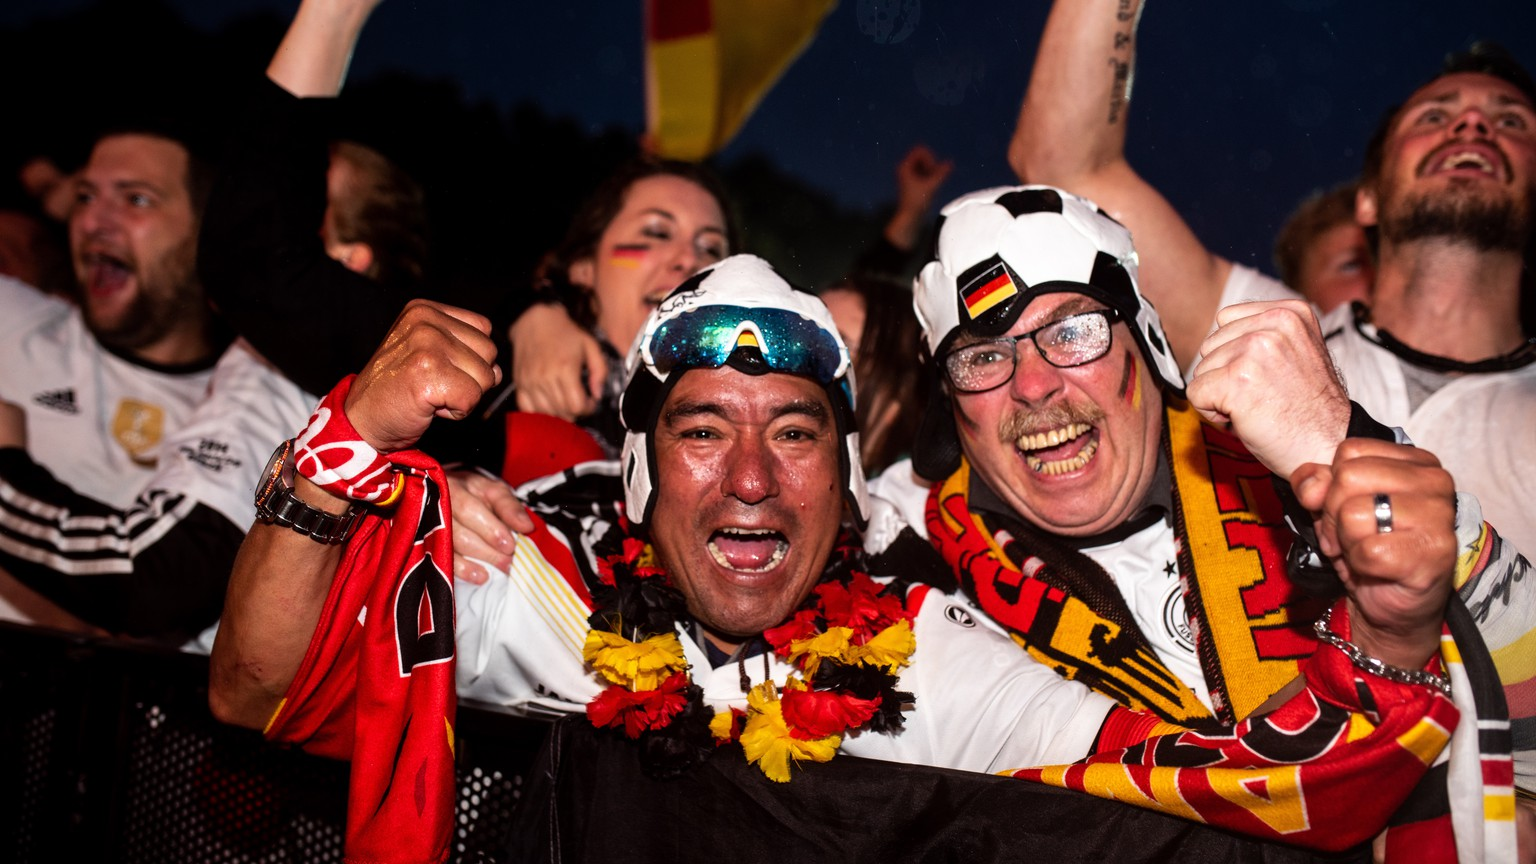 epa06834857 German fans celebrate the 2-1 lead during the FIFA World Cup 2018 match between Germany and Sweden at the public viewing in front of the Brandenburg Gate in Berlin, Germany, 23 June 2018.  EPA/MARKUS HEINE